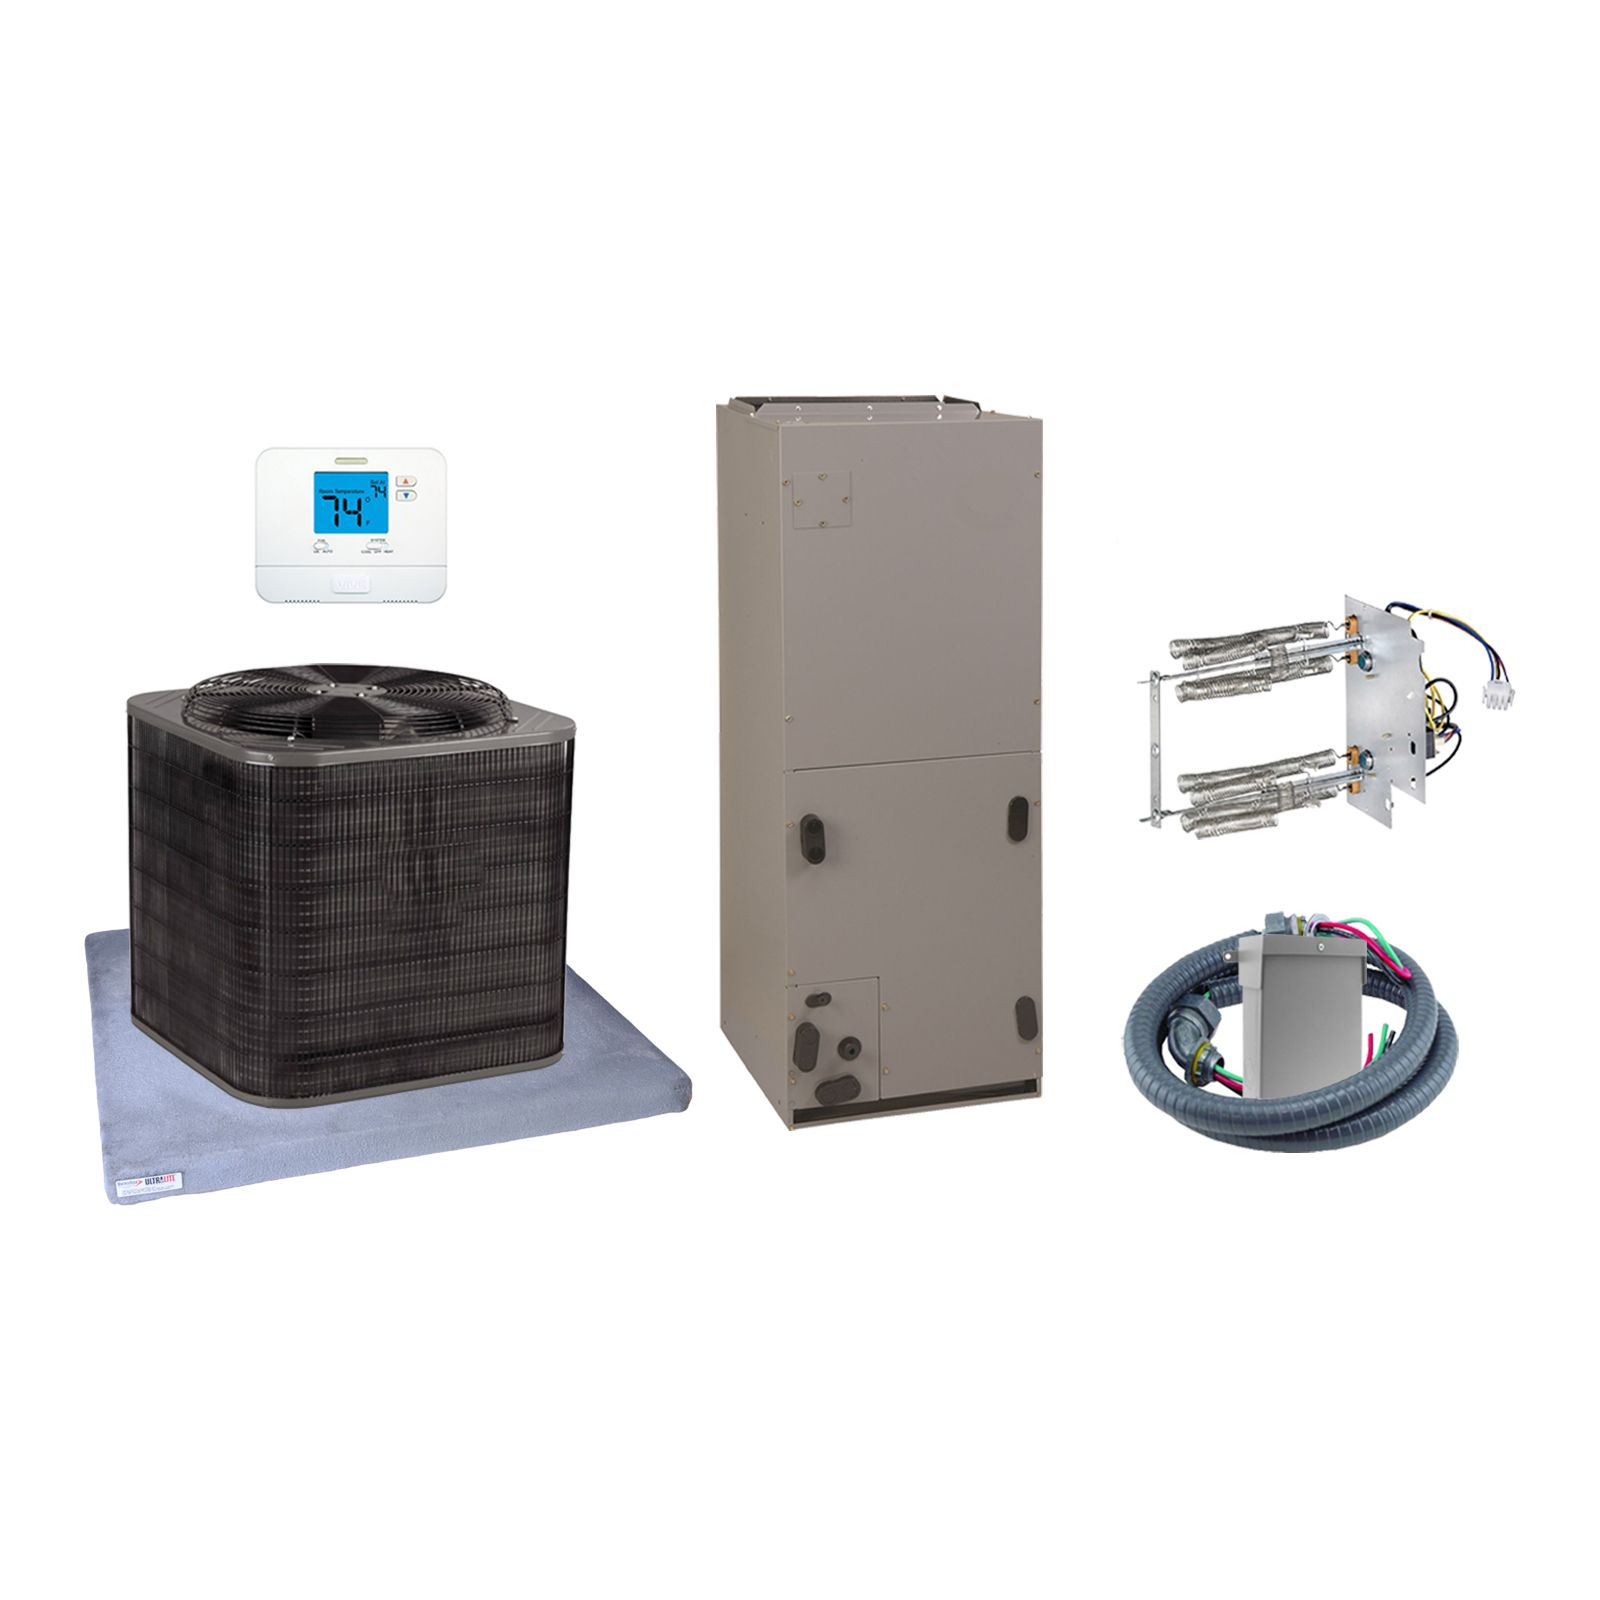 EcoTemp (AHRI 7646608) 5 Ton, 14.5 SEER/11.5 EER Horizontal Air Conditioner Split System and Install Kit